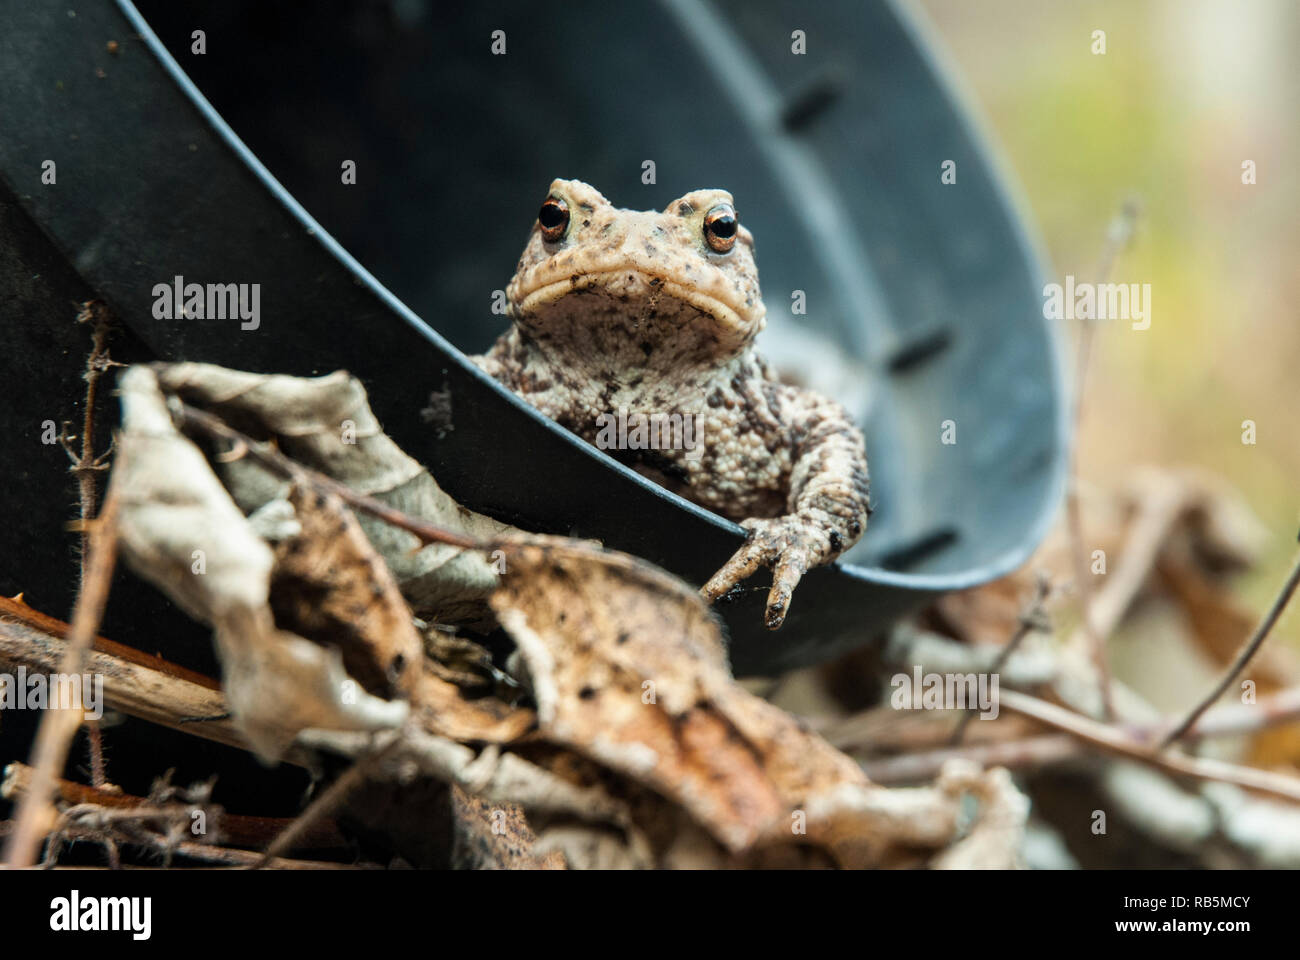 A common toad (bufo bufo) peering out of a plant pot among leaf litter, looking directly at the camera with golden eyes. - Stock Image